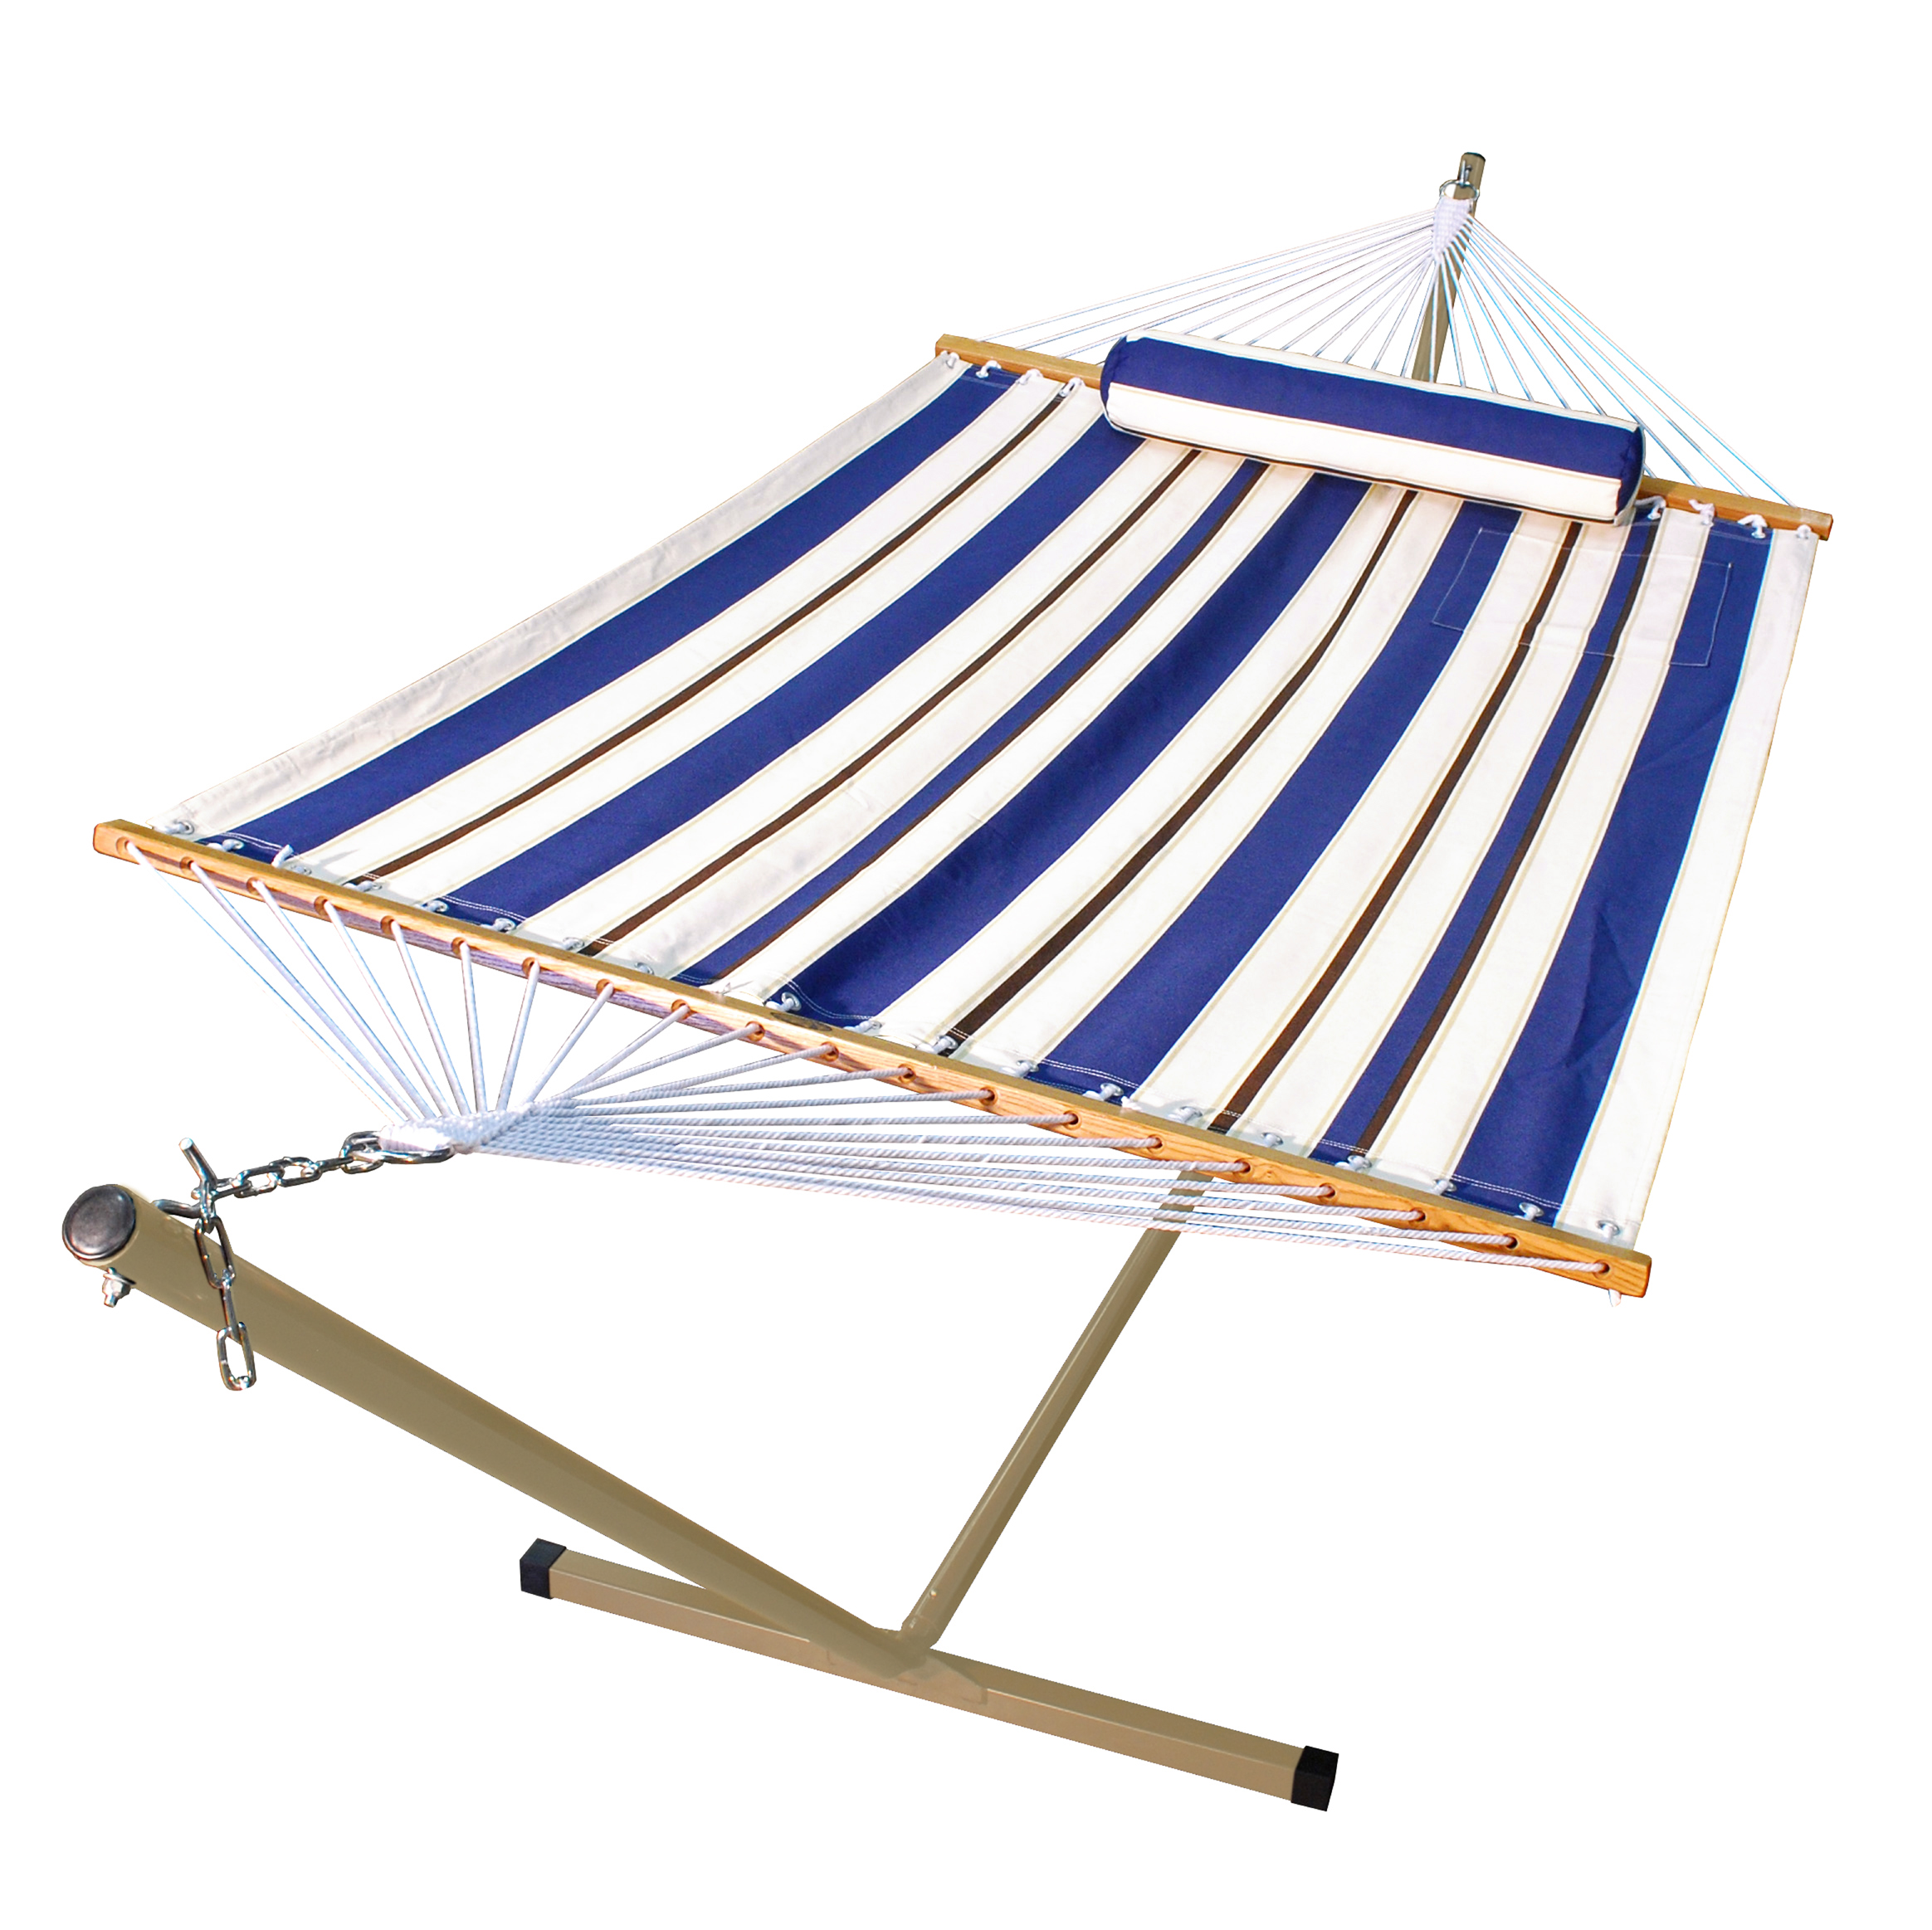 12' Fabric Hammock, Pillow, and Stand Combination